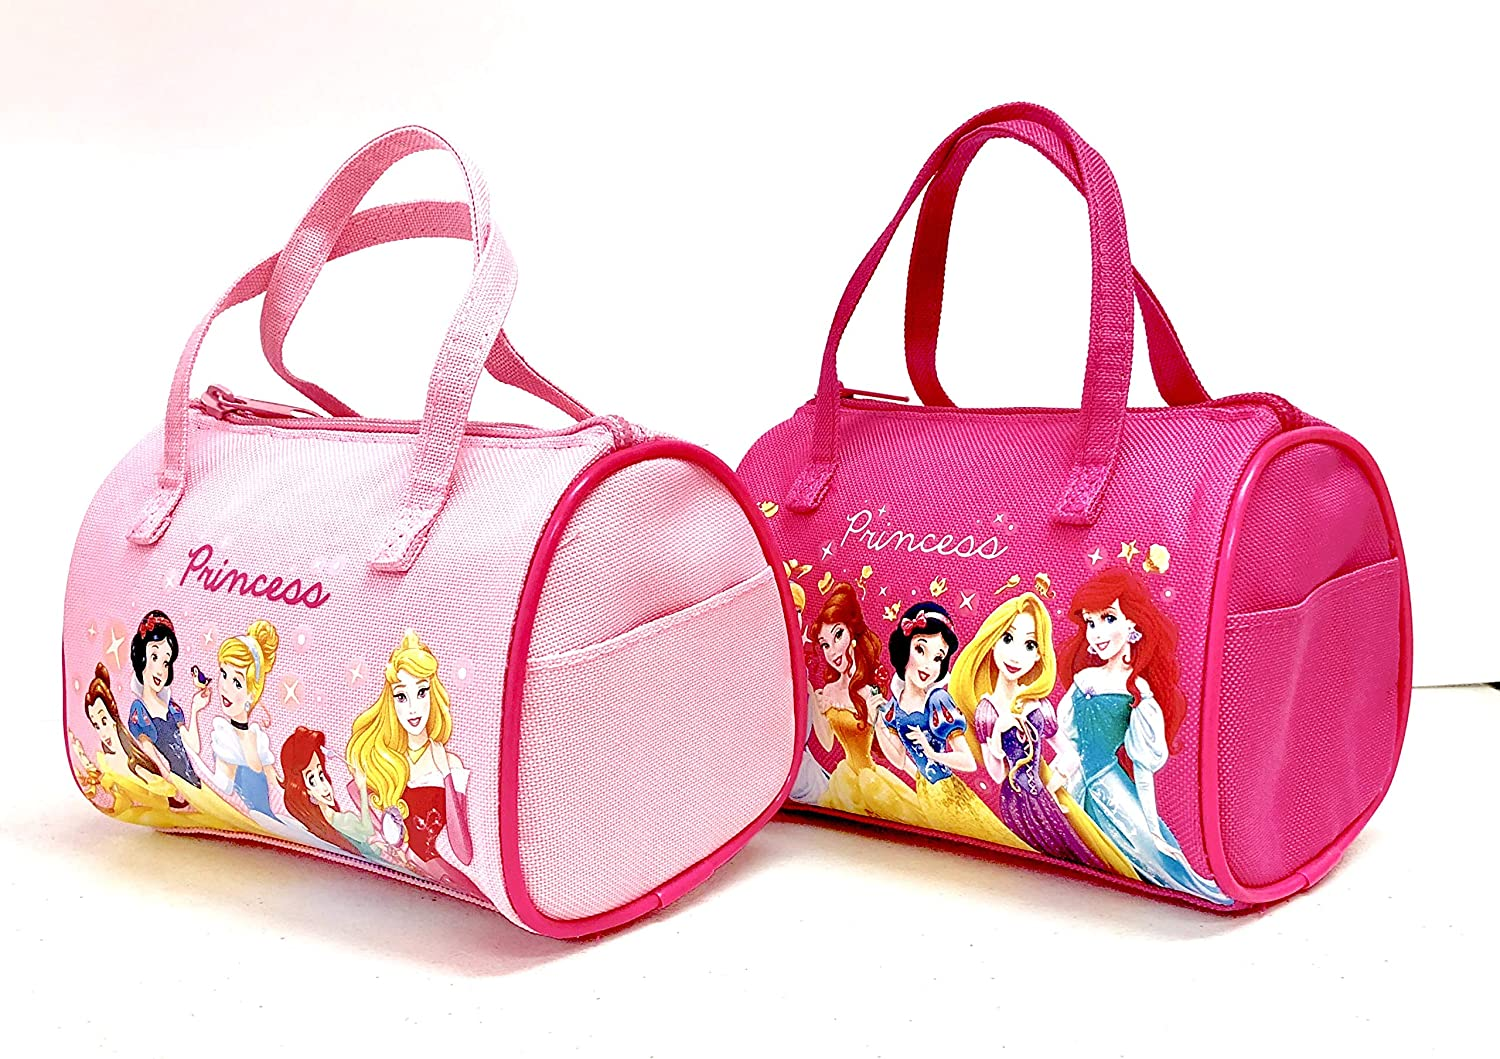 Disney Princess Small Hand Bag for Little Girl  7  4 Pink & Hot Pink (2 Packs) by Disney